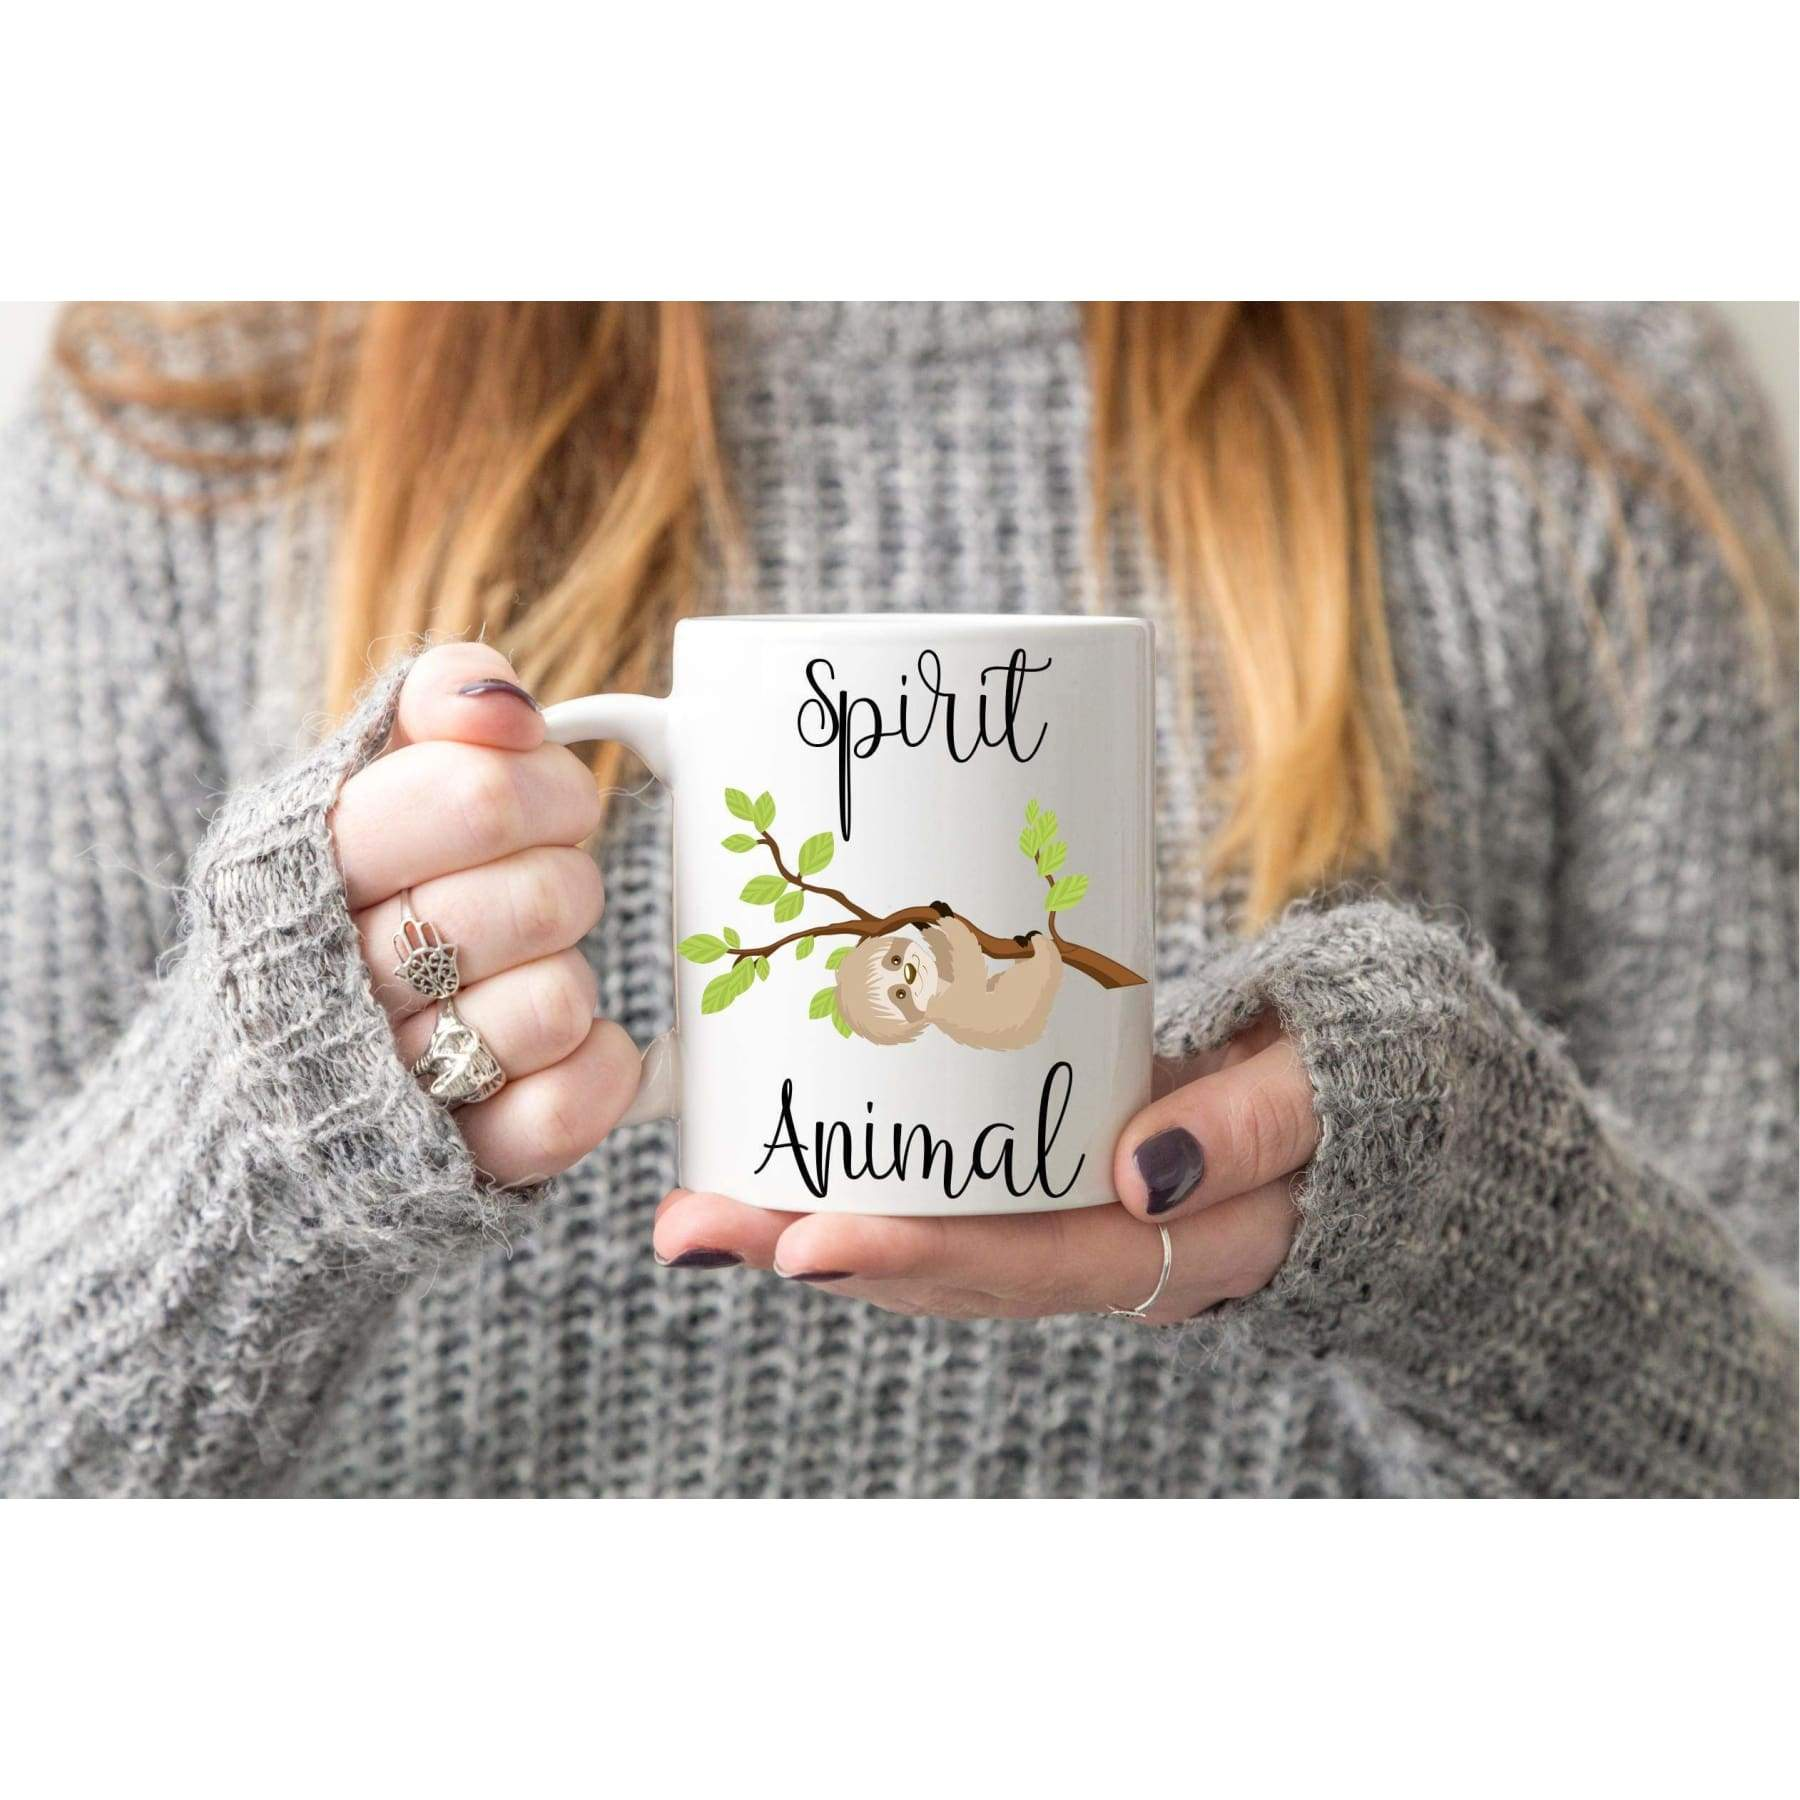 Spirit Animal Sloth Mug.